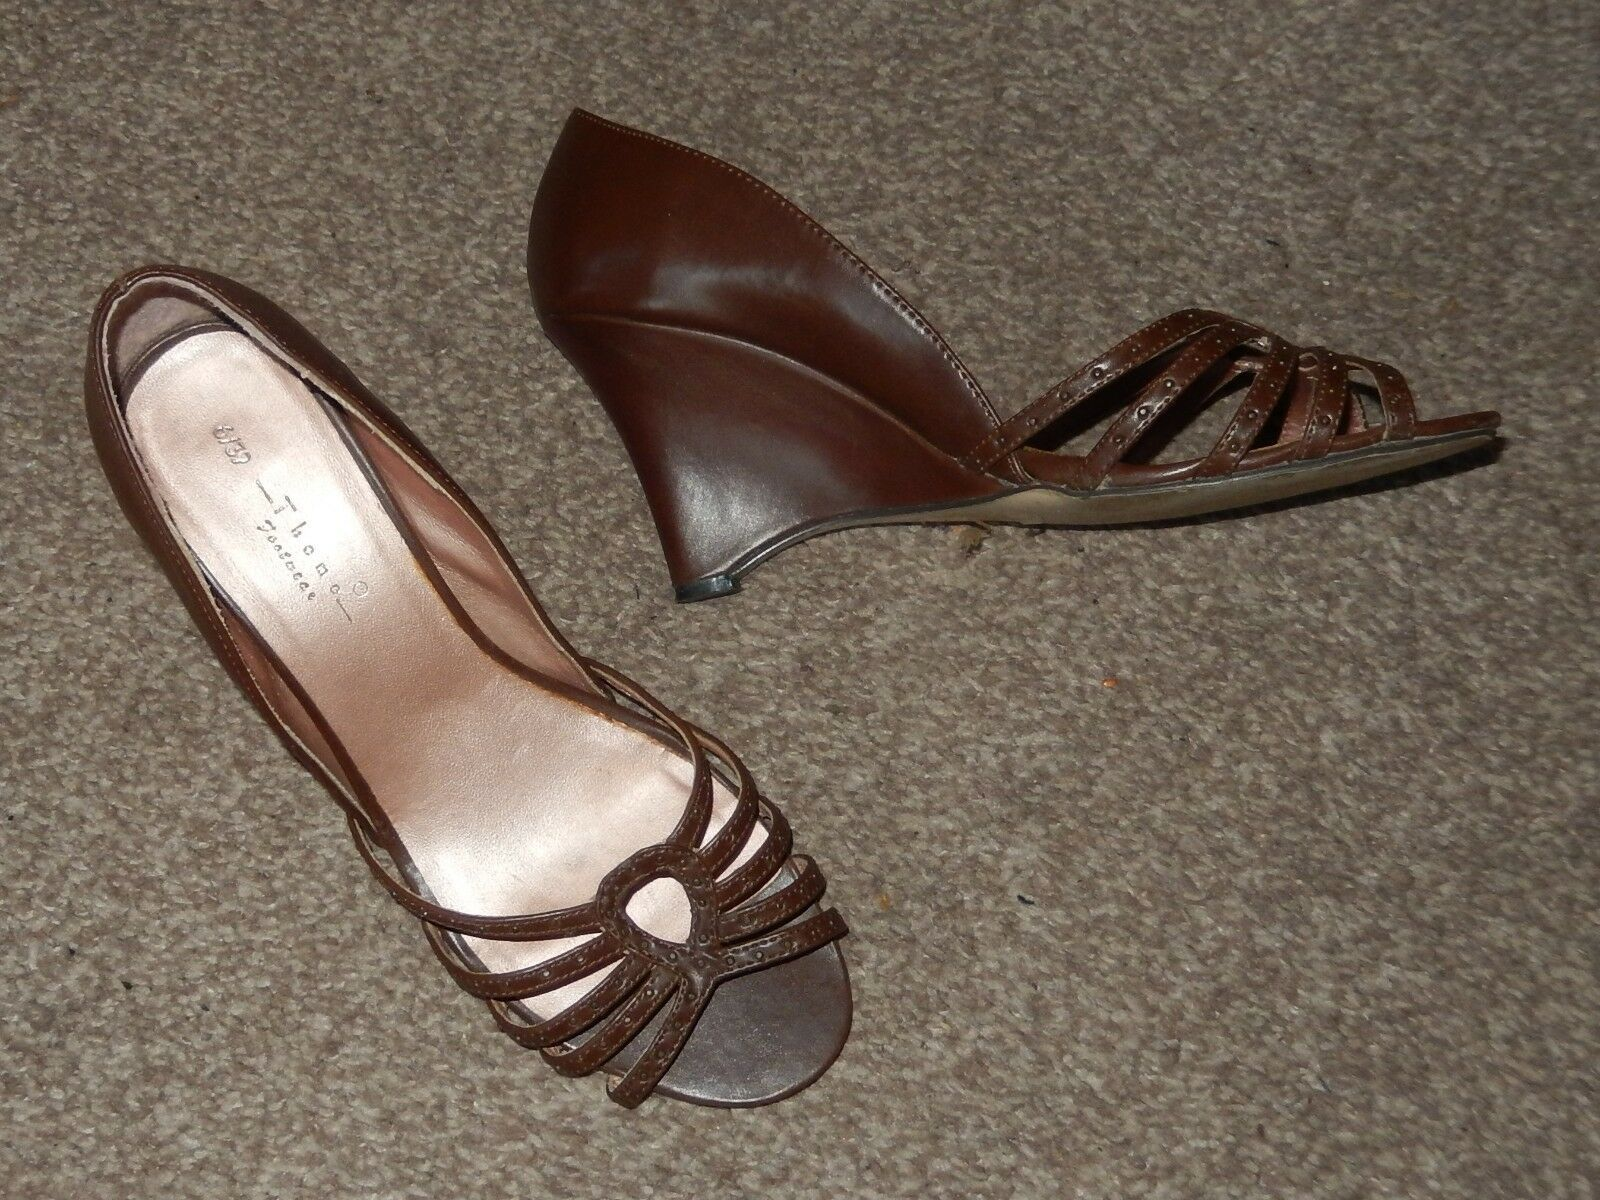 BROWN CLOSED BACK WEDGE SANDALS / / SHOES SIZE 6 / SANDALS 39 THEME FOOTWEAR 748a42